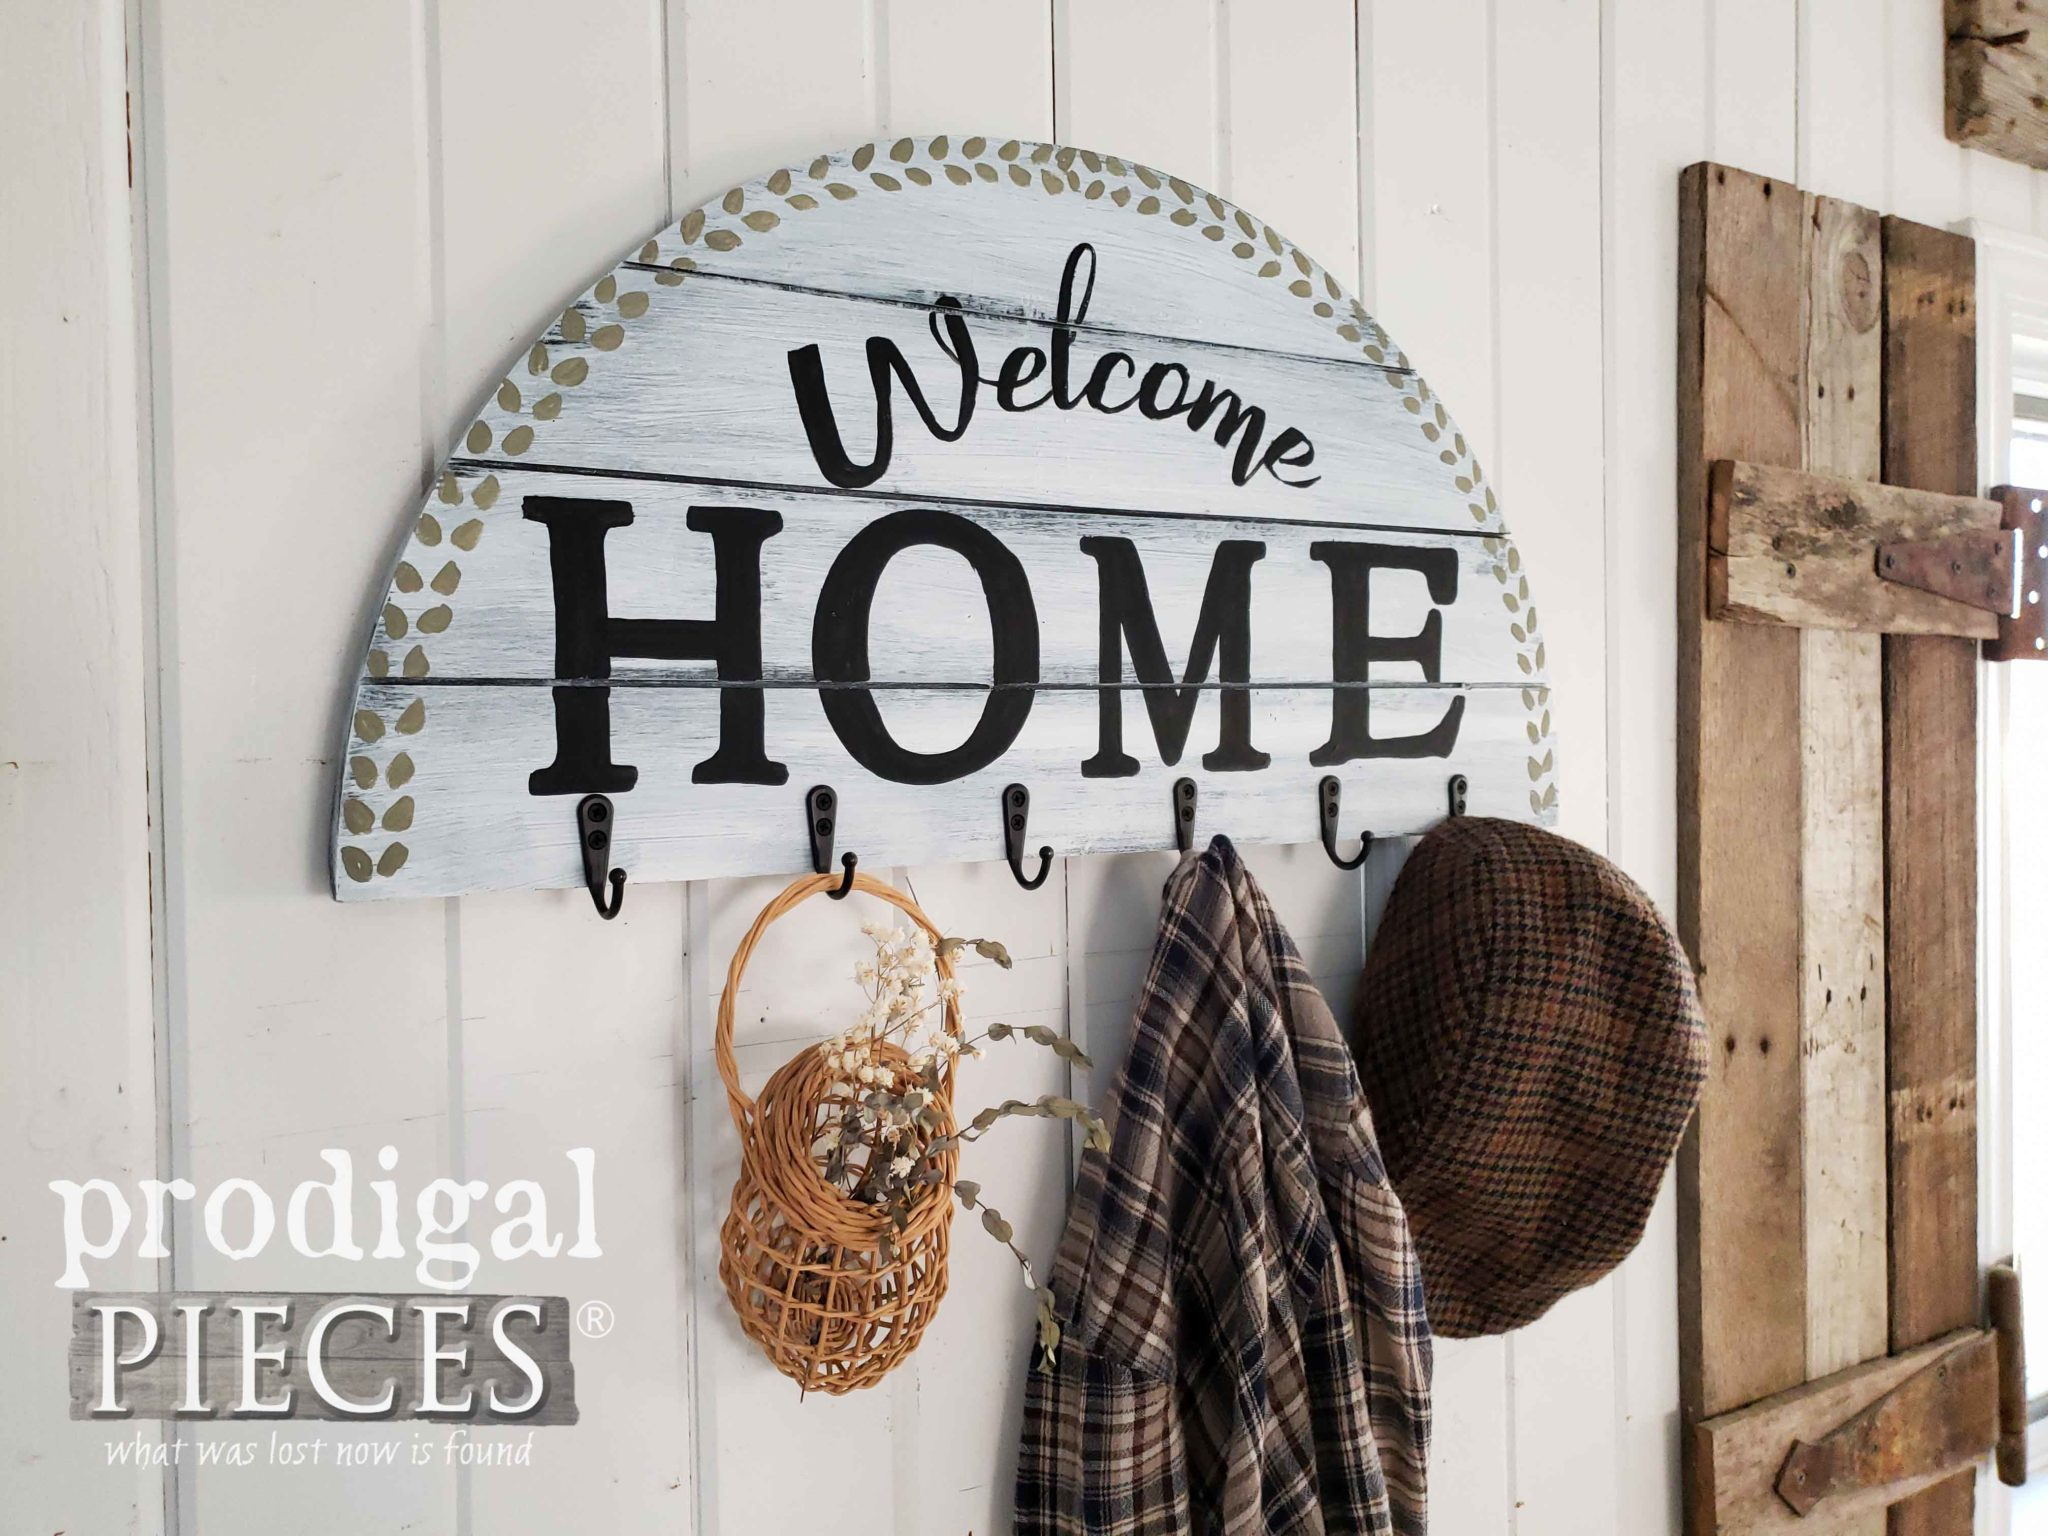 DIY Welcome Home Coat Rack Created by Larissa of Prodigal Pieces | Tutorial at prodigalpieces.com #prodigalpieces #farmhouse #diy #home #homedecor #homedecorideas